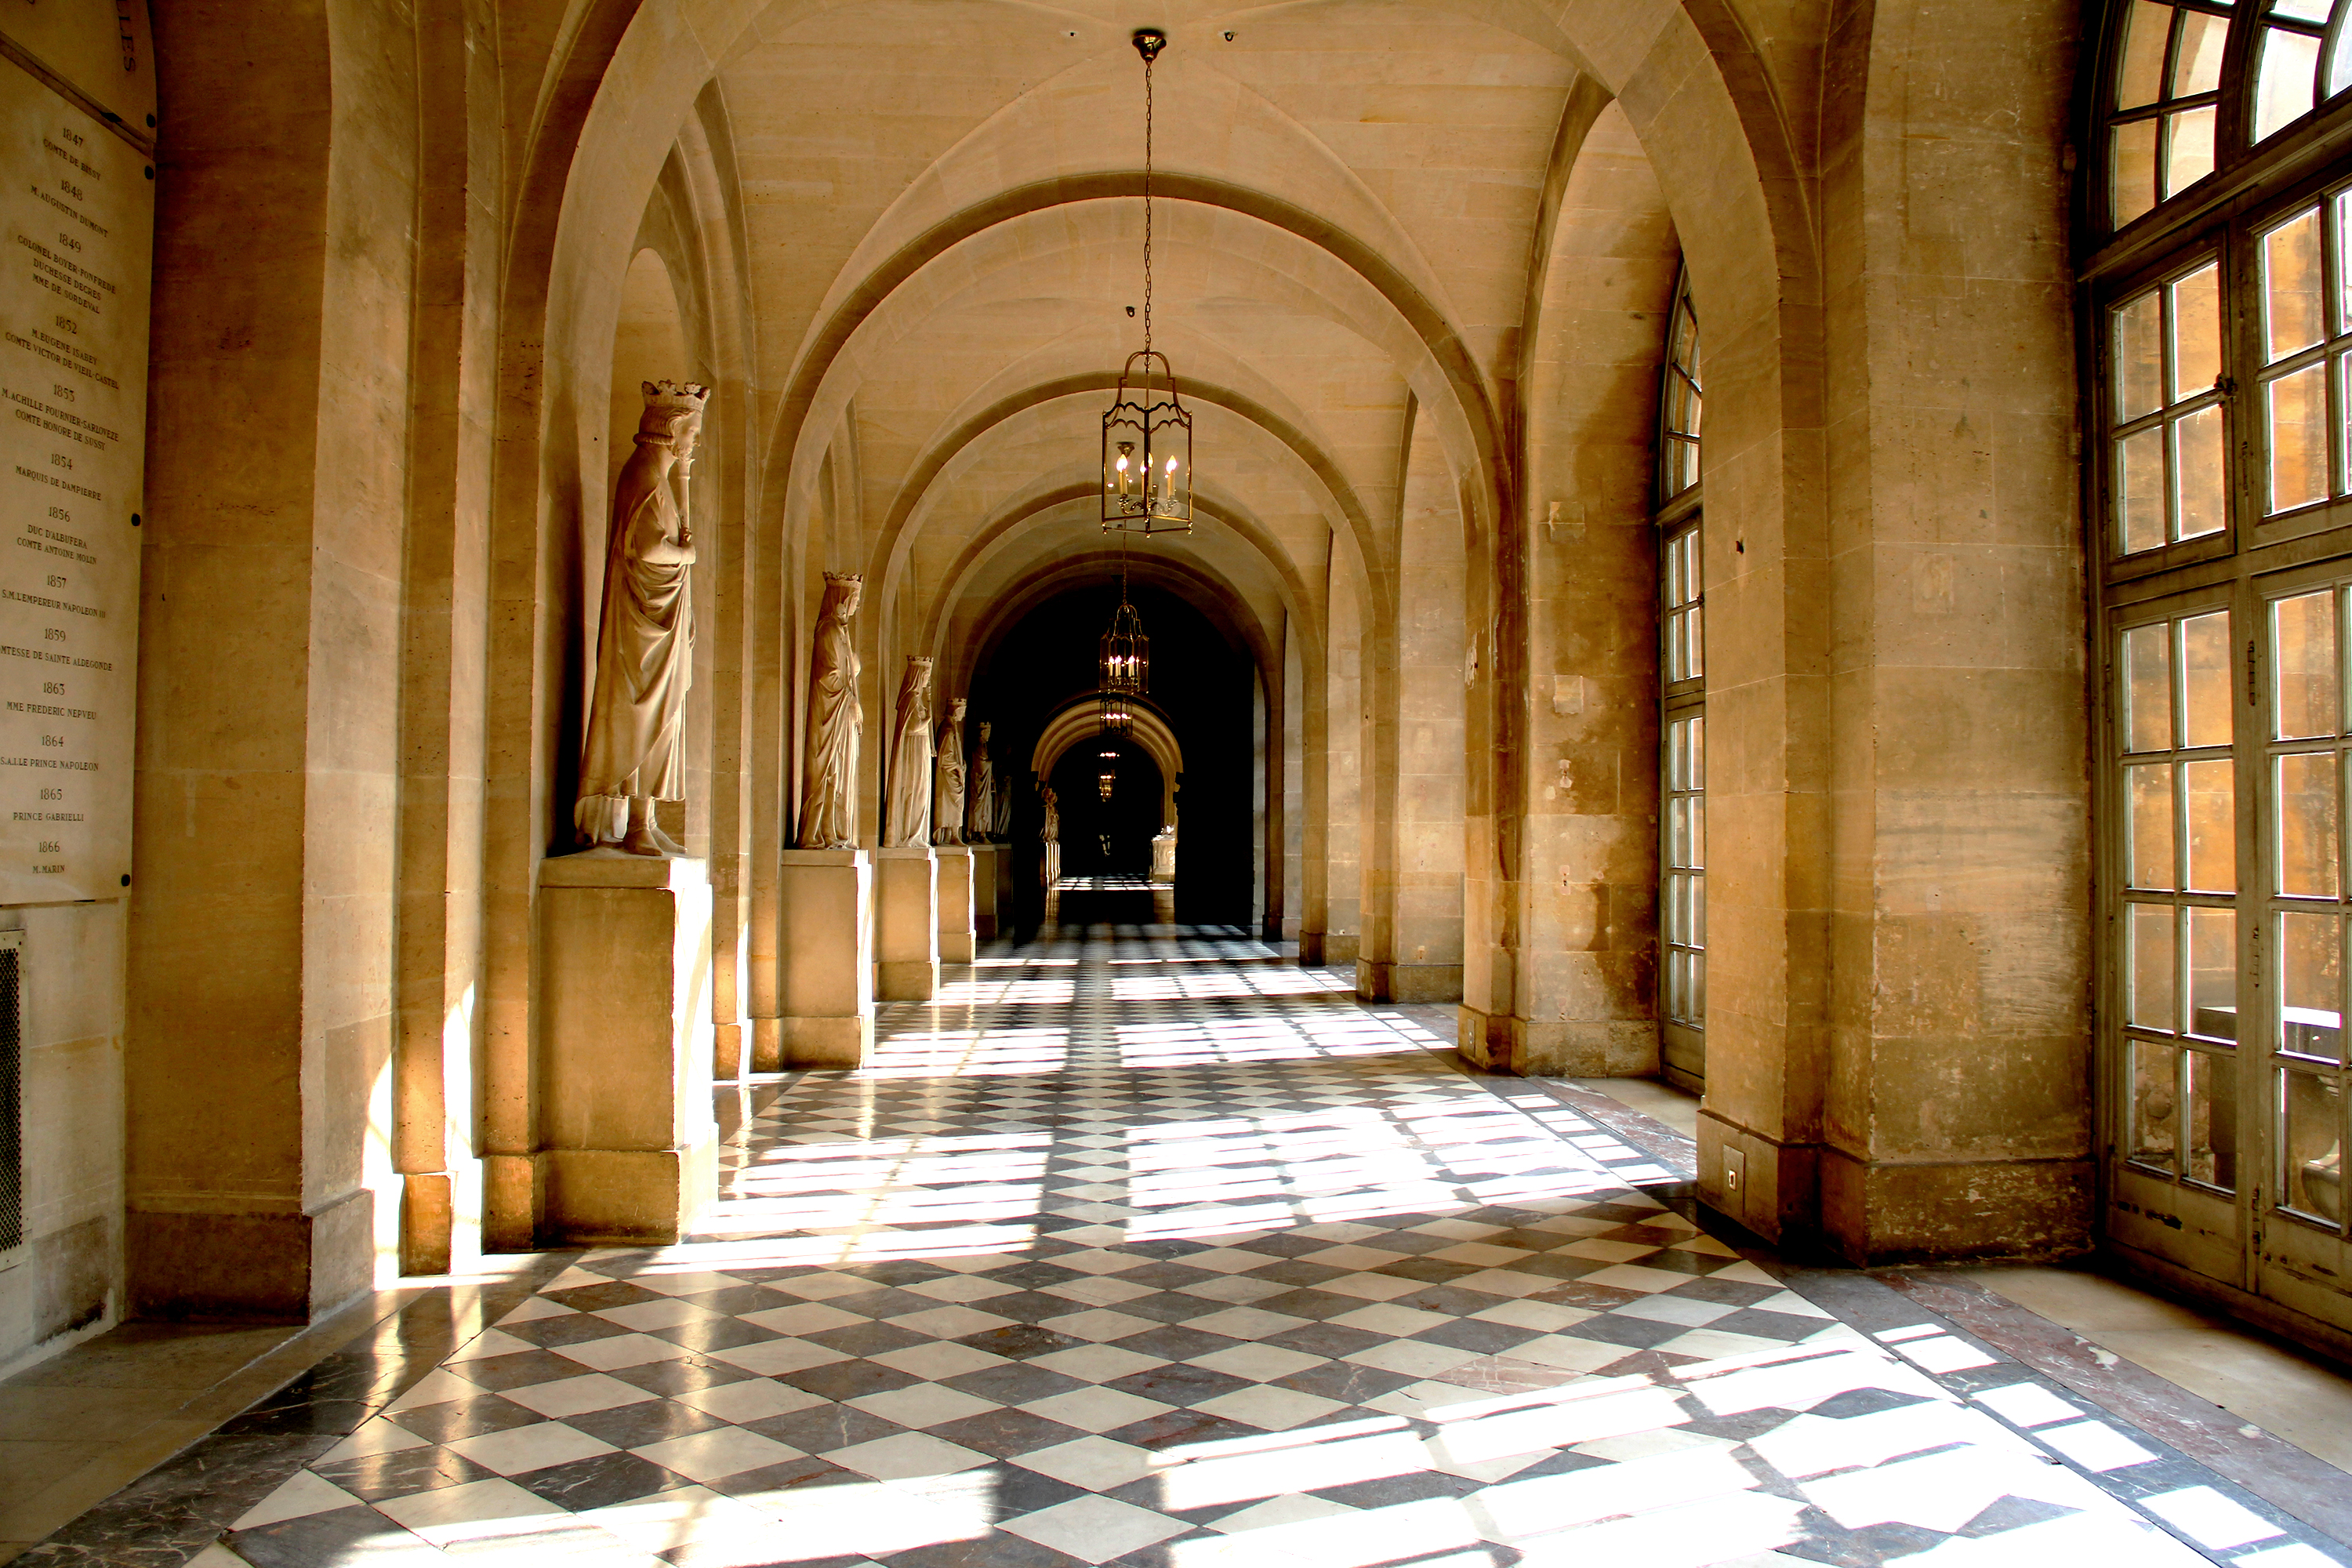 The hall of light and shadow